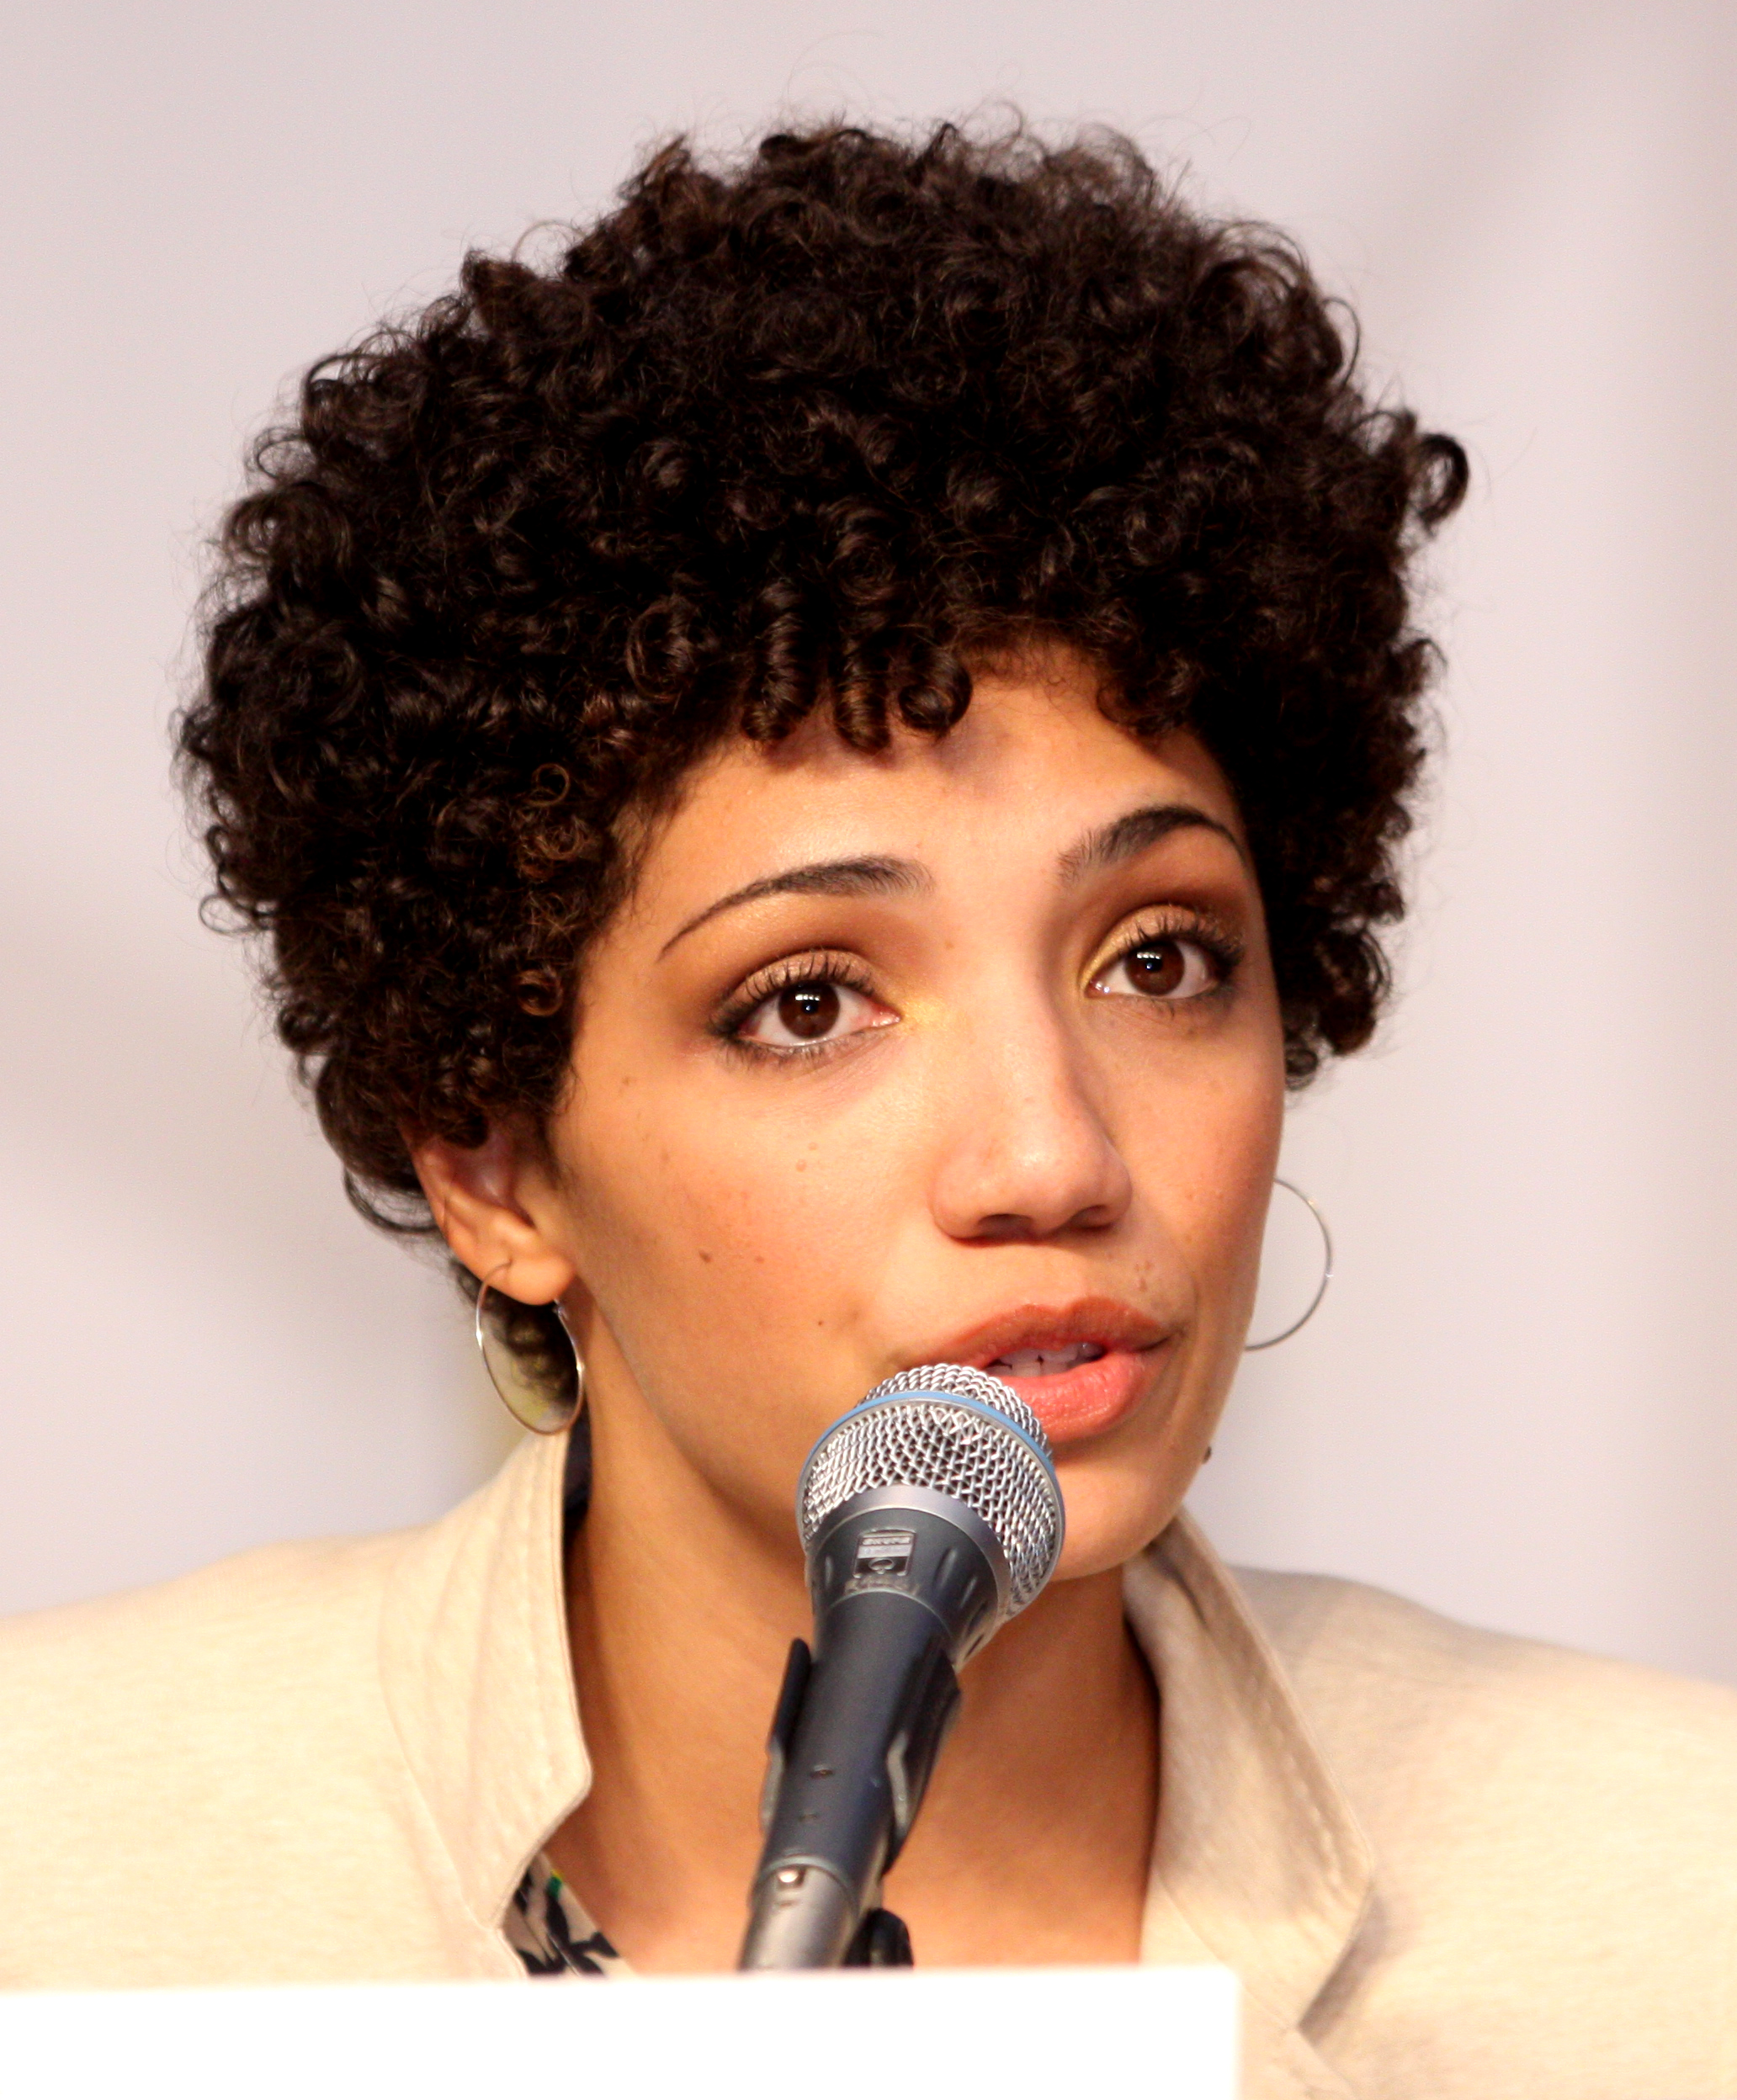 Jasika Nicole - Photo Set